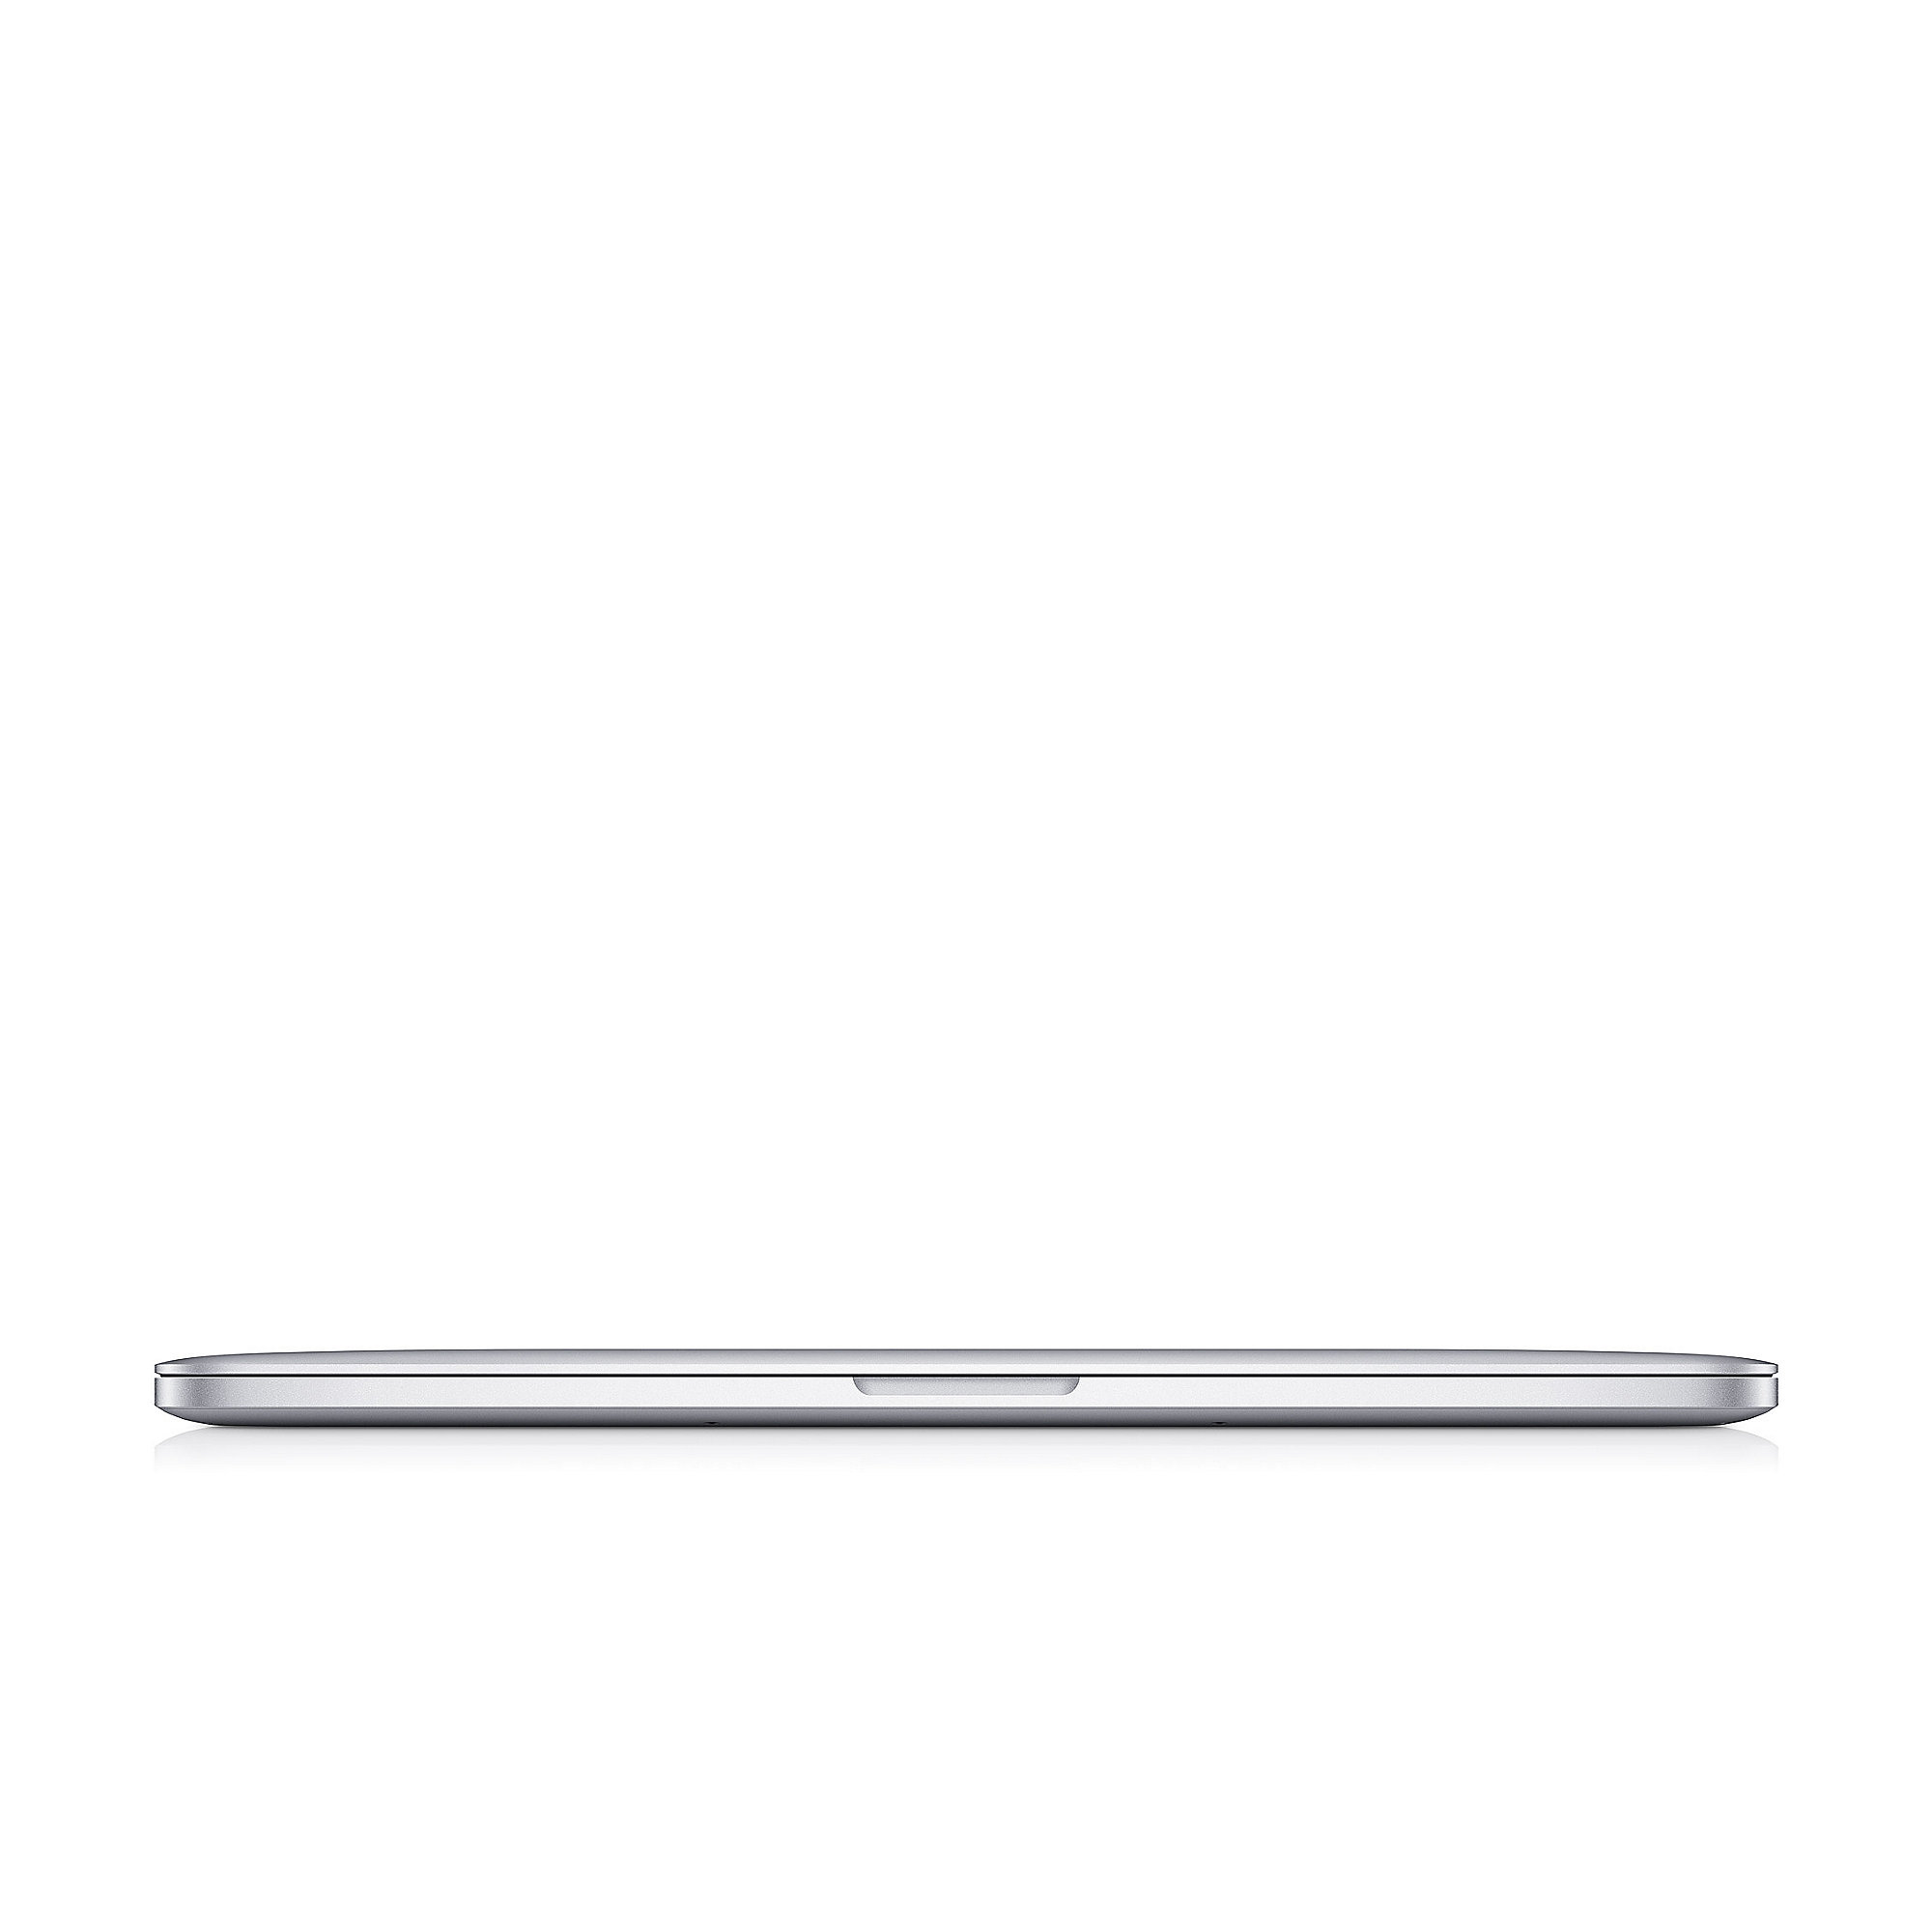 "Apple MacBook Pro 15,4"" Retina 2,2 GHz i7 16 GB 256 GB SSD IIP (MJLQ2D/A)"